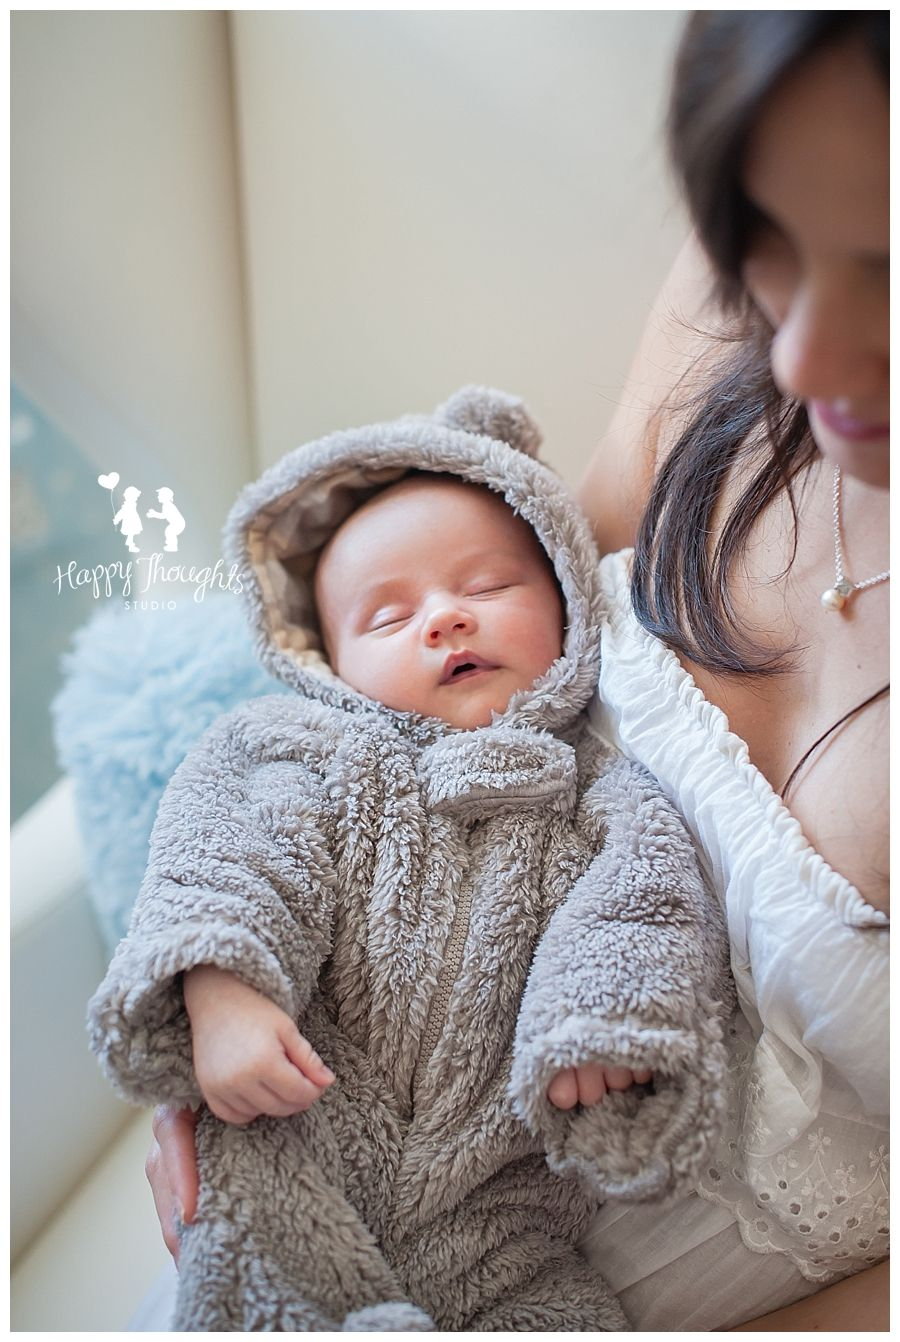 At Home Newborn Baby Boy Photography Happy Thoughts Newborns